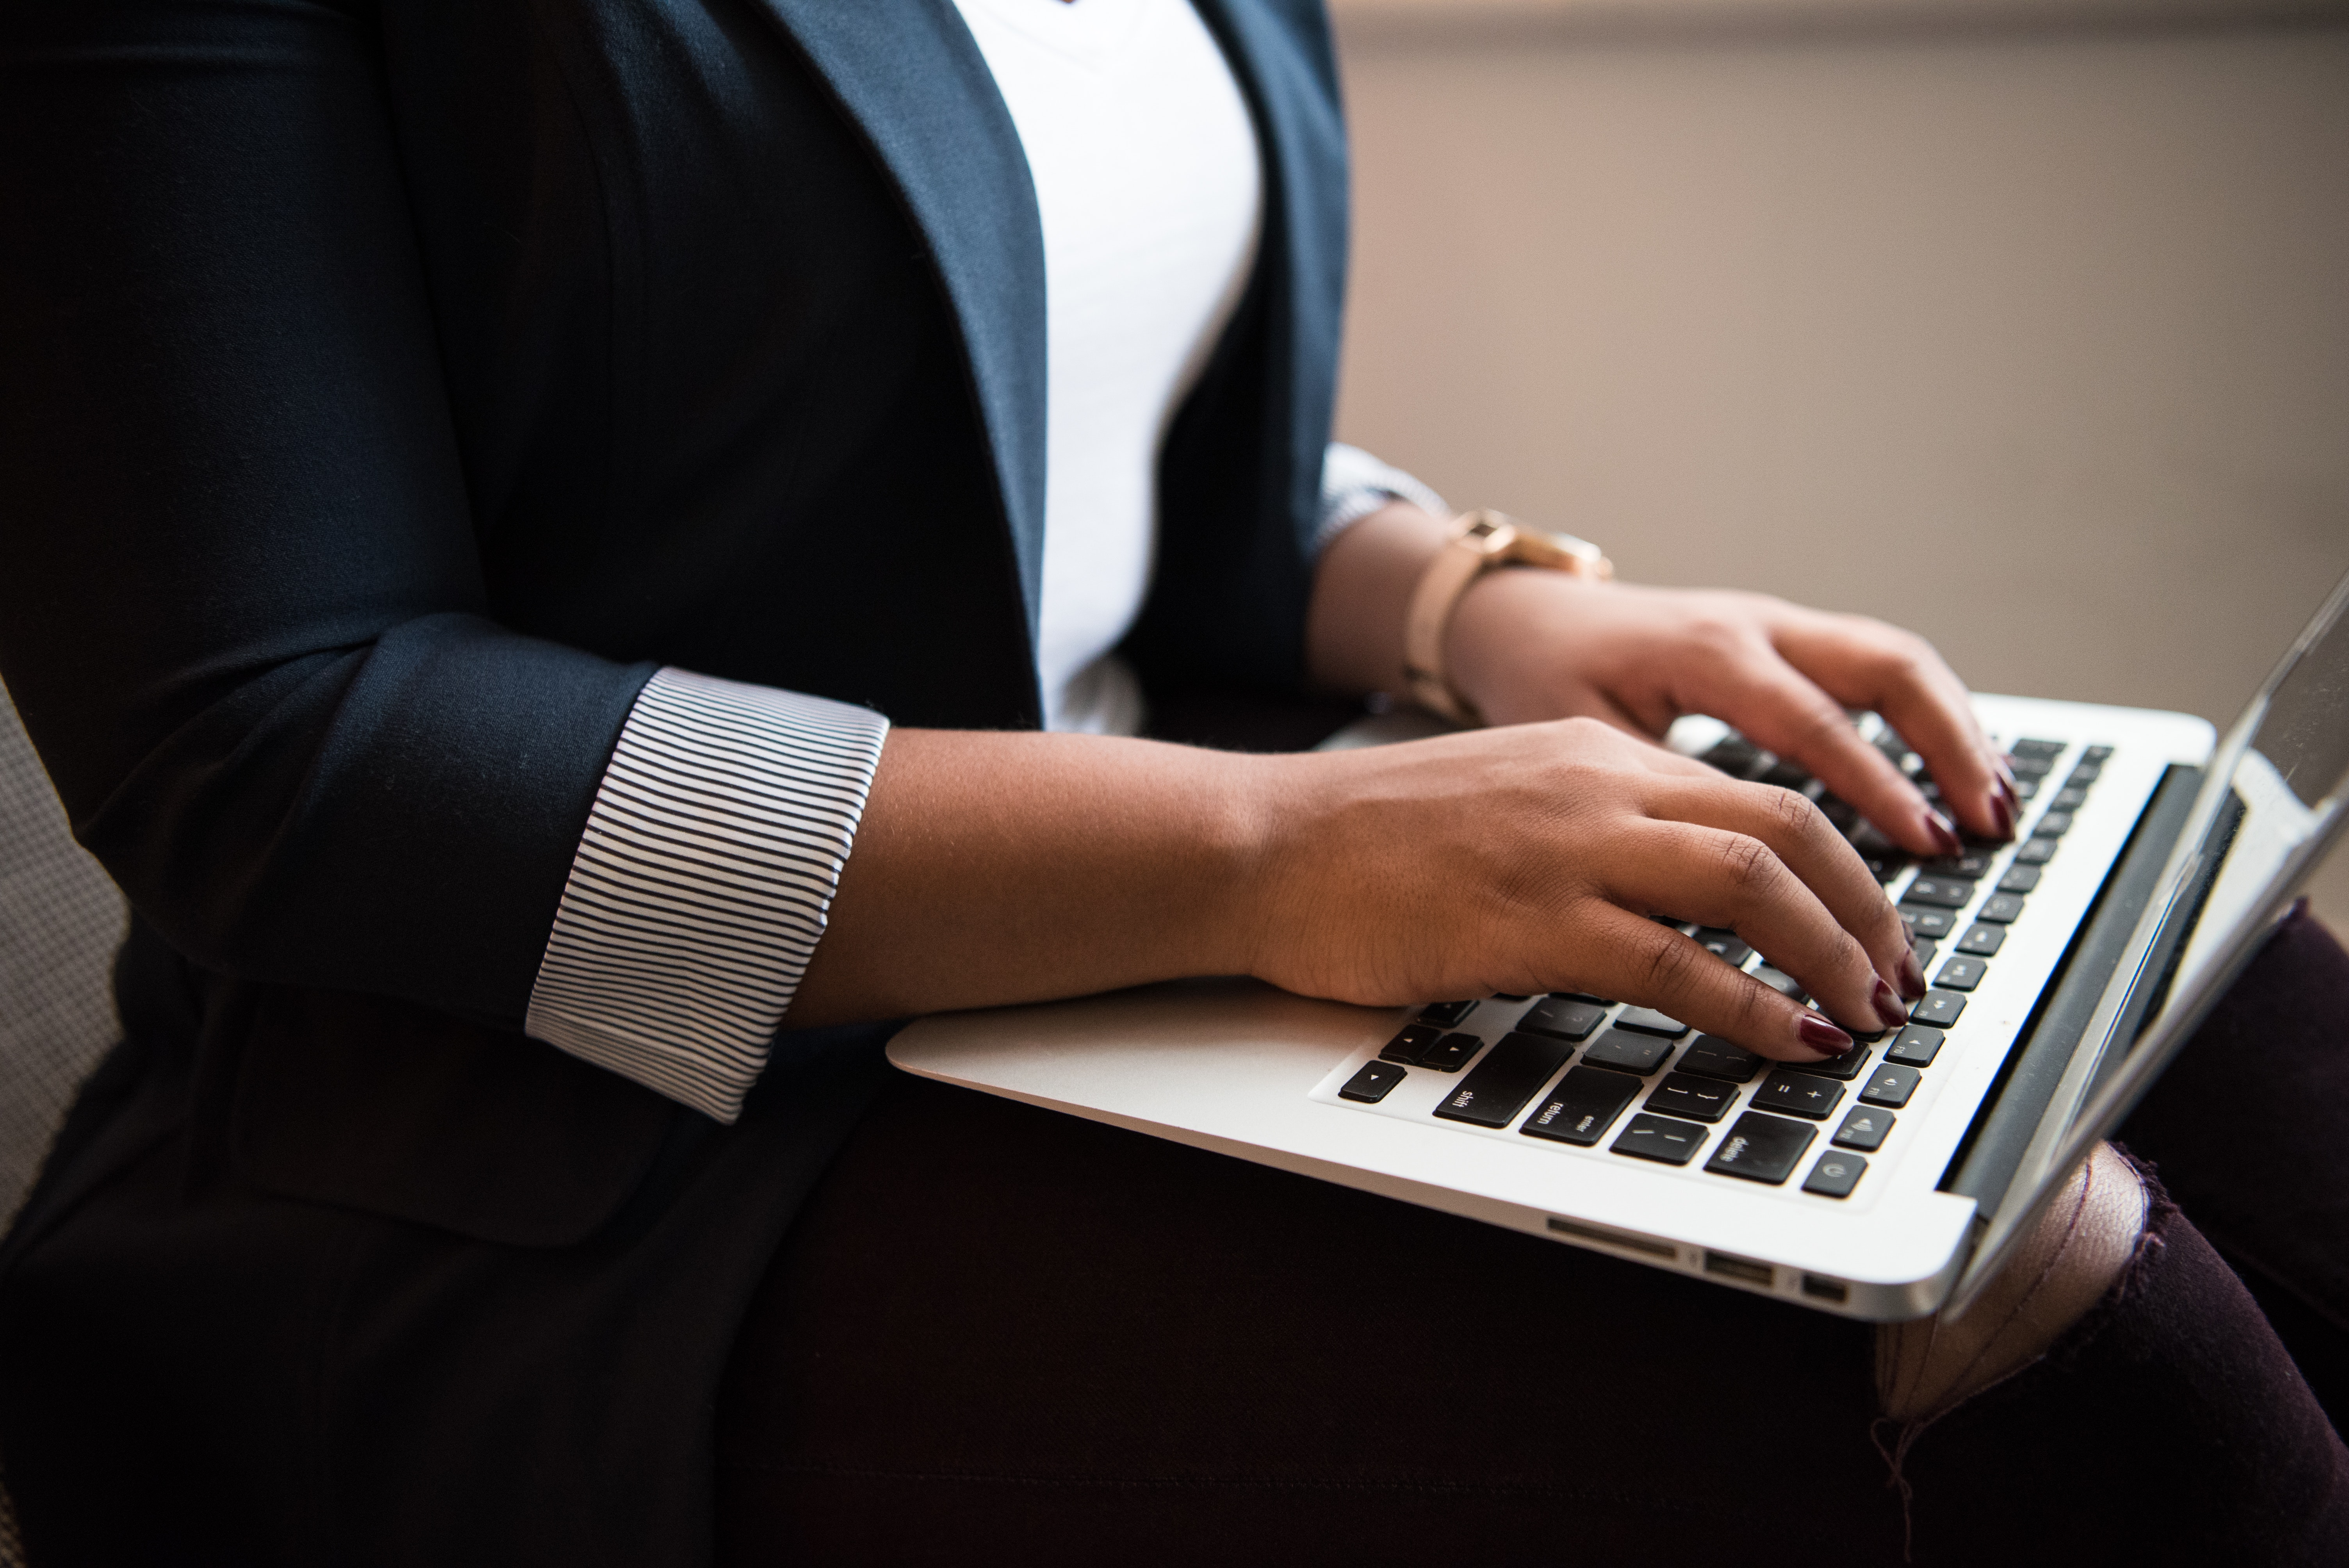 A powerful business woman wearing professional clothing typing on her laptop.